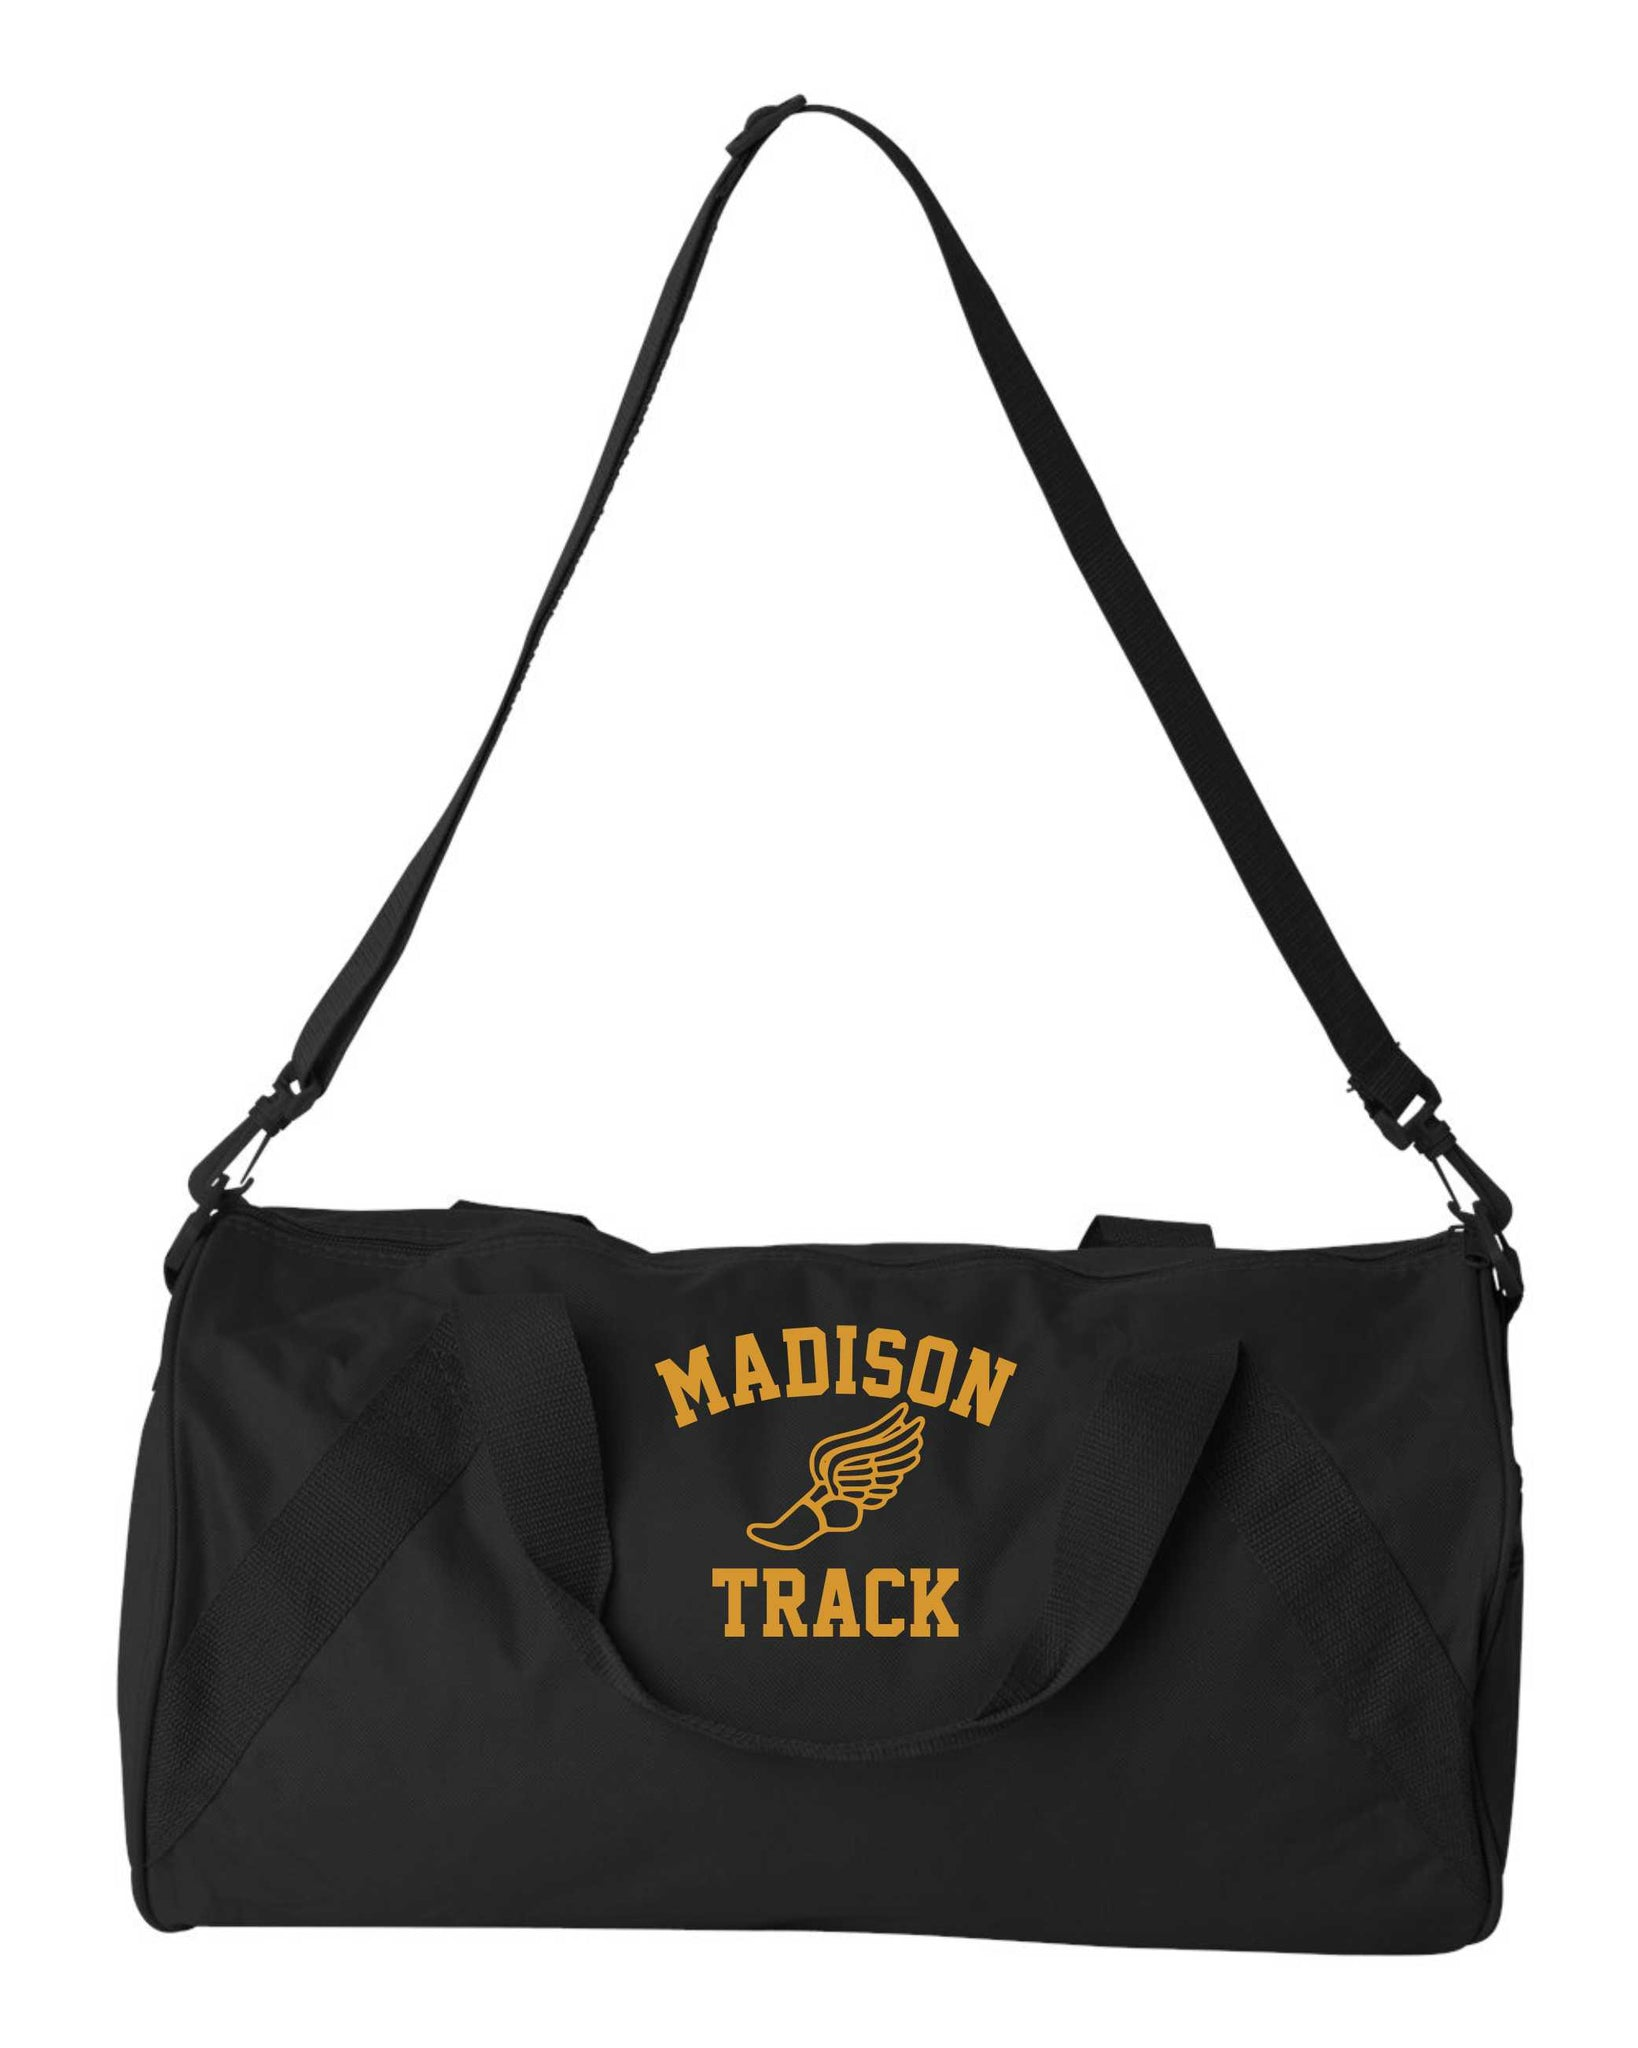 James Madison Black Duffle Bag